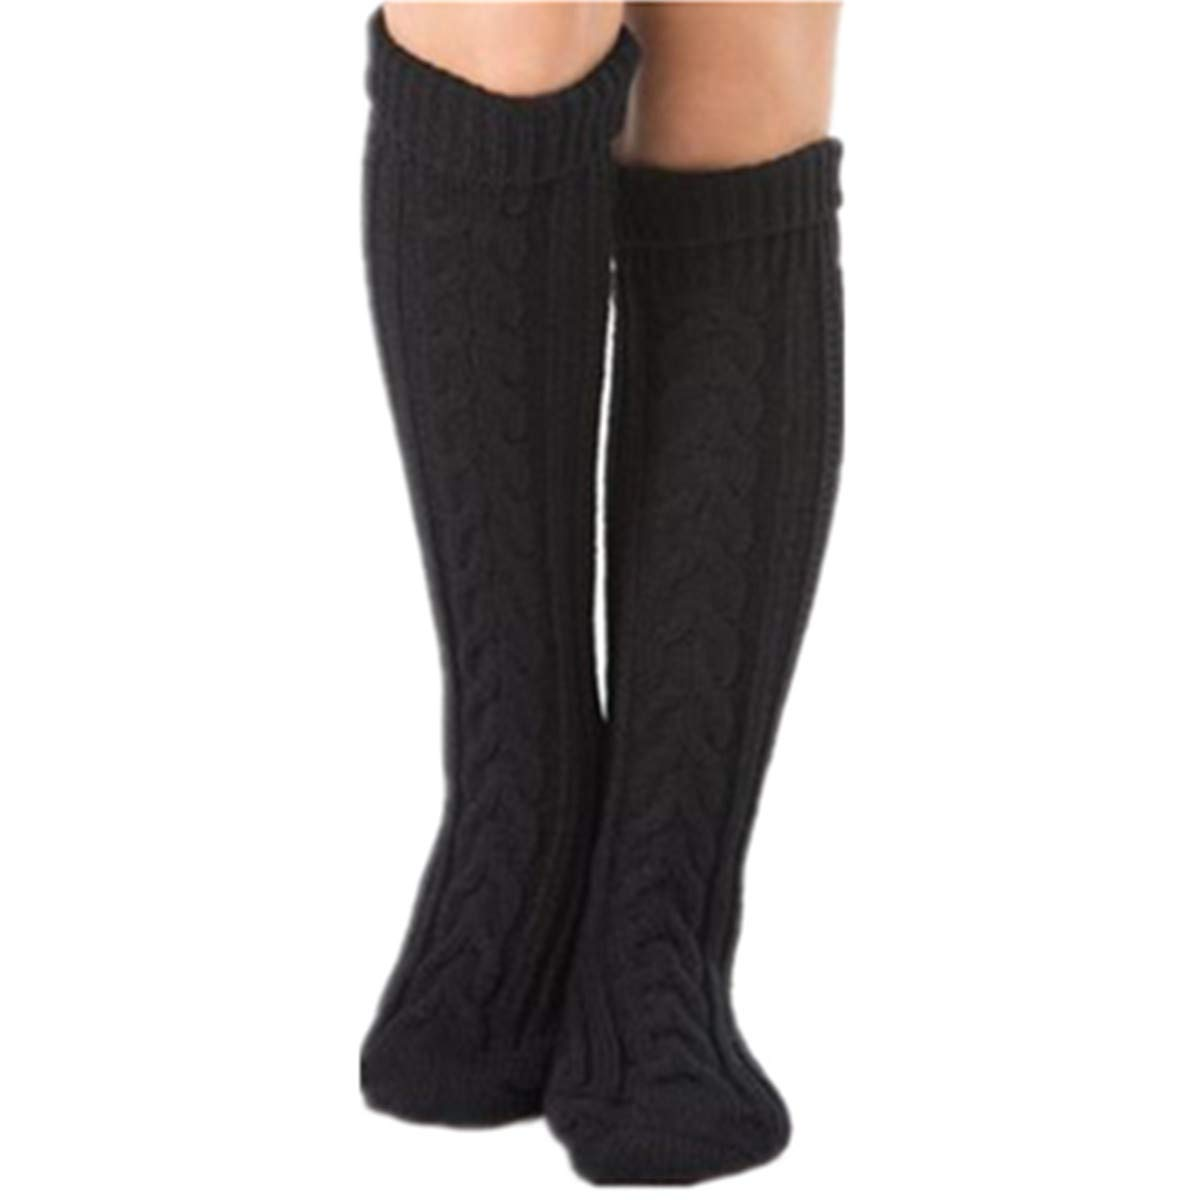 f49da024f Women s Cable Knit Over the Knee Thigh High Stockings Long Boot Socks Leg  Warmer (Black) at Amazon Women s Clothing store